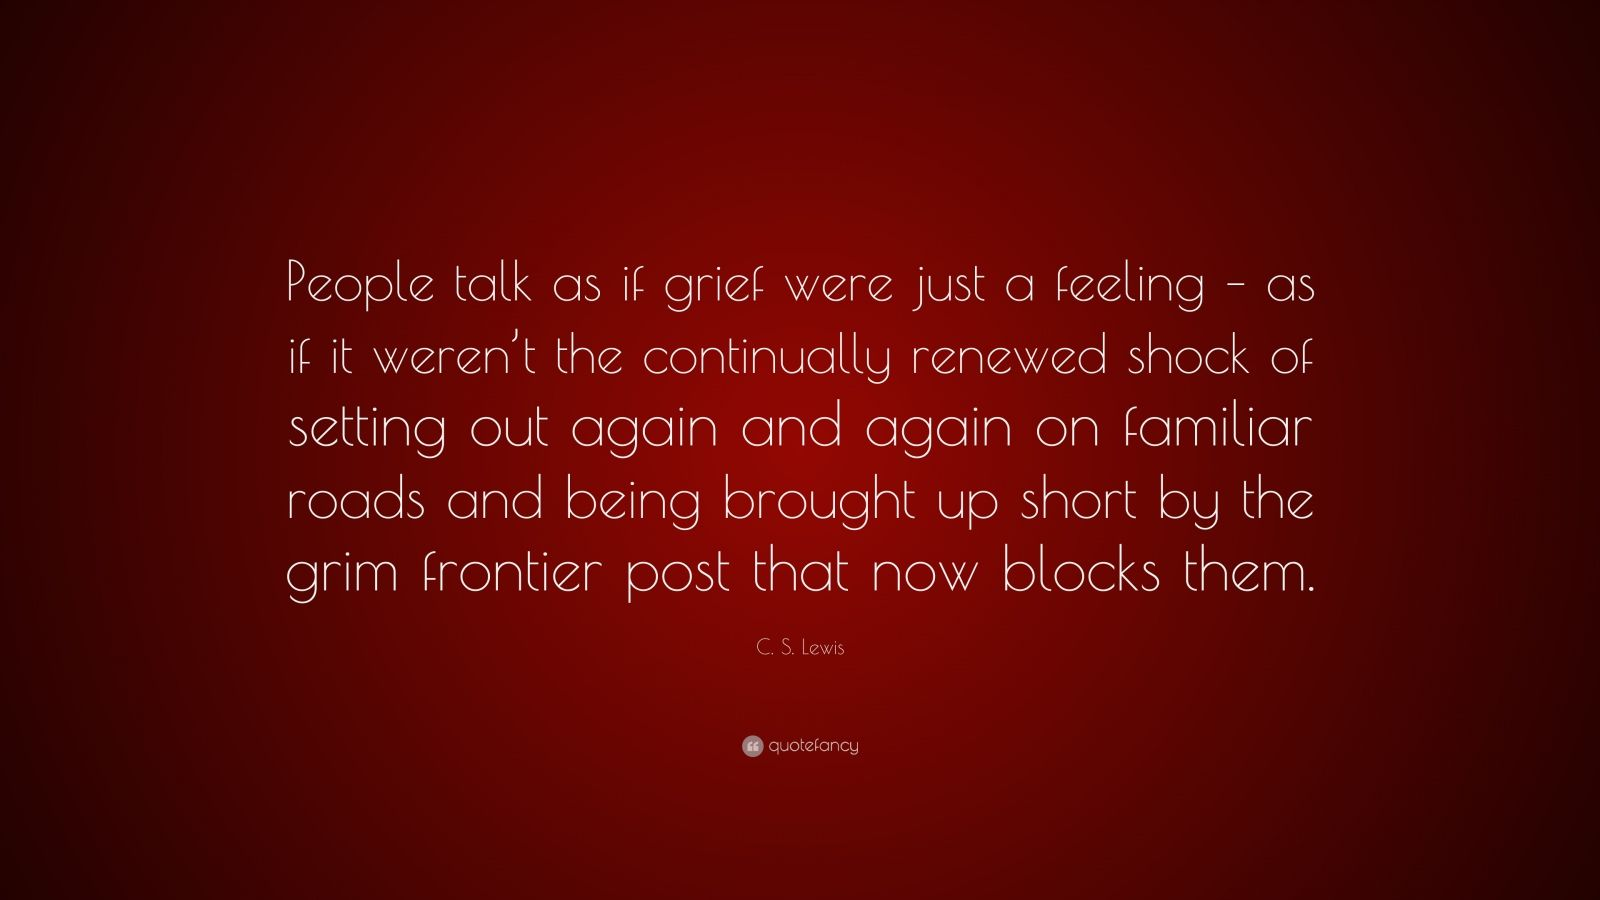 "C. S. Lewis Quote: ""People talk as if grief were just a feeling – as if it weren't the continually renewed shock of setting out again and again on familiar roads and being brought up short by the grim frontier post that now blocks them."""